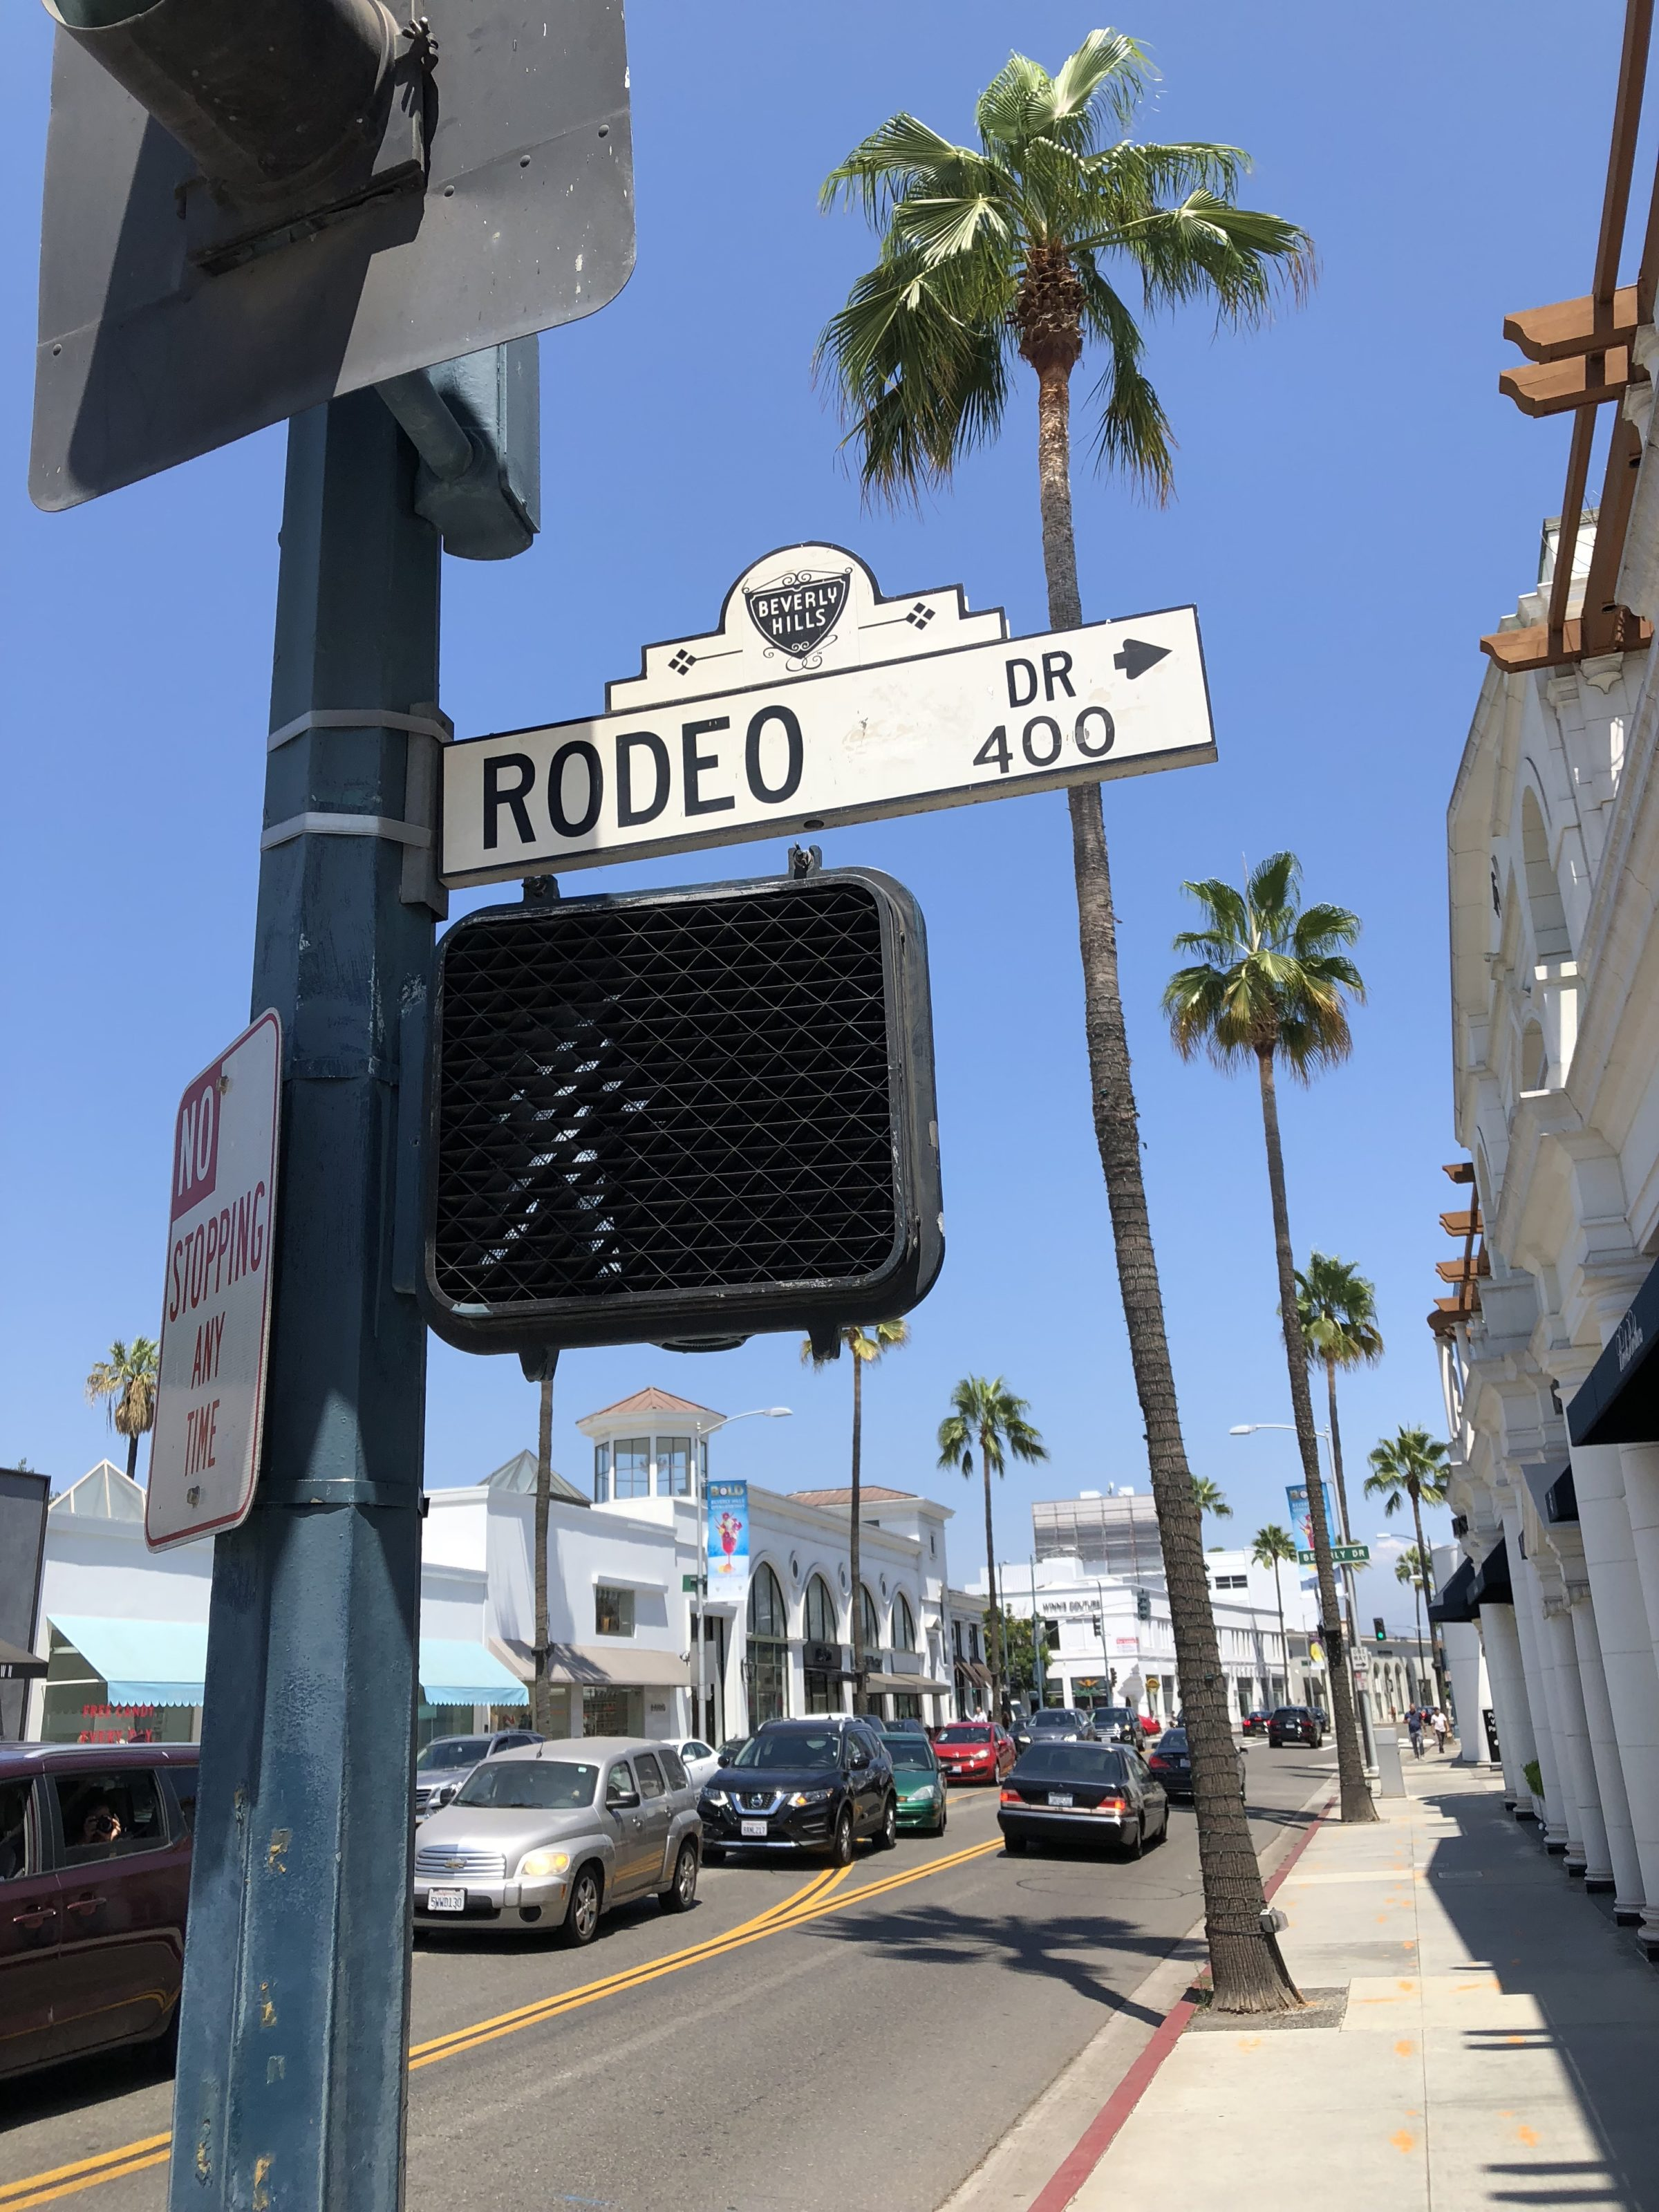 Strolling down Rodeo Drive is one of the fun, free things to do in Los Angeles.